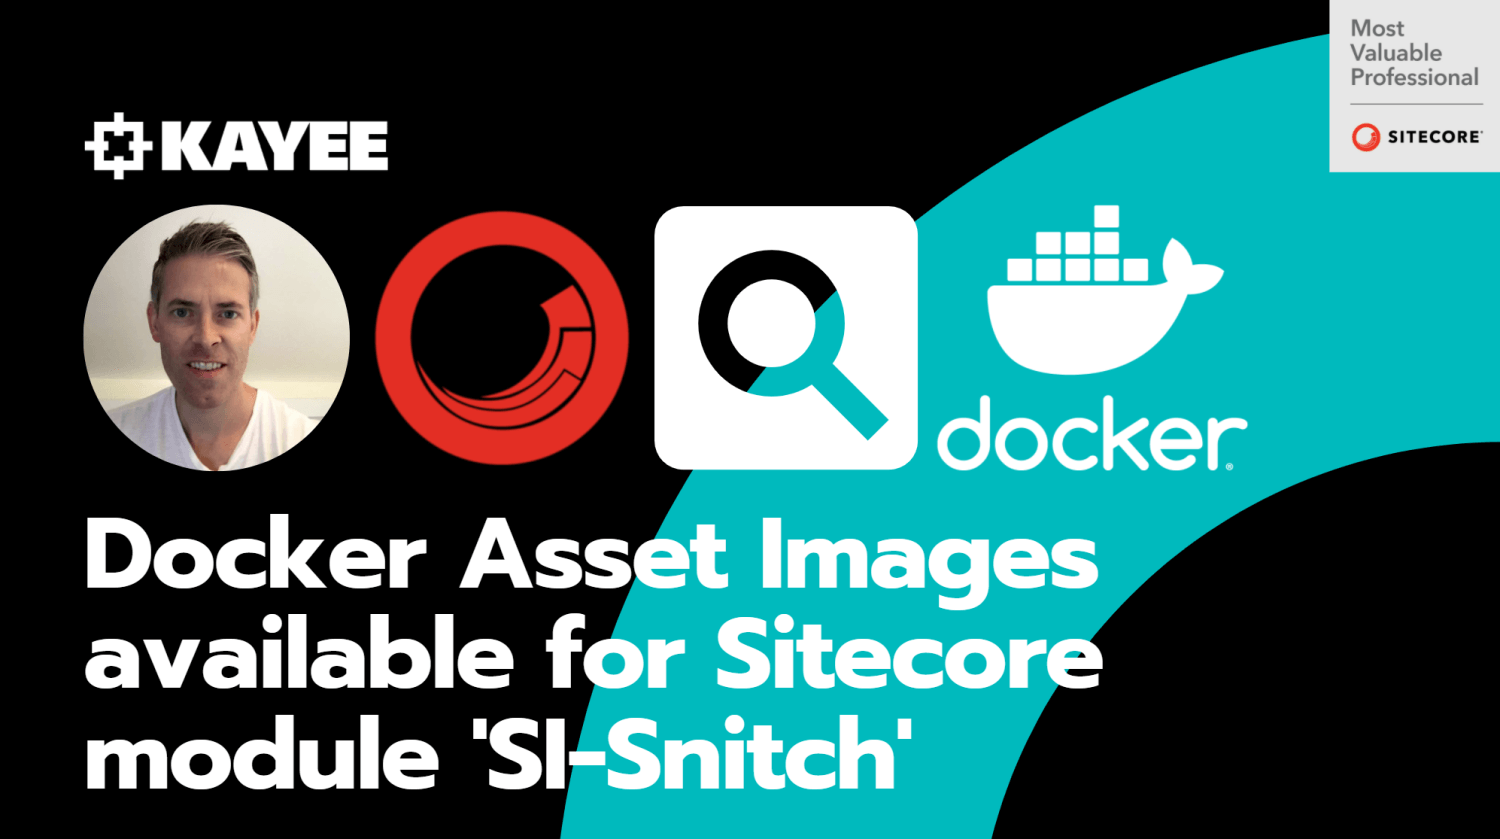 Docker Asset Images available for Sitecore module 'SI-Snitch'